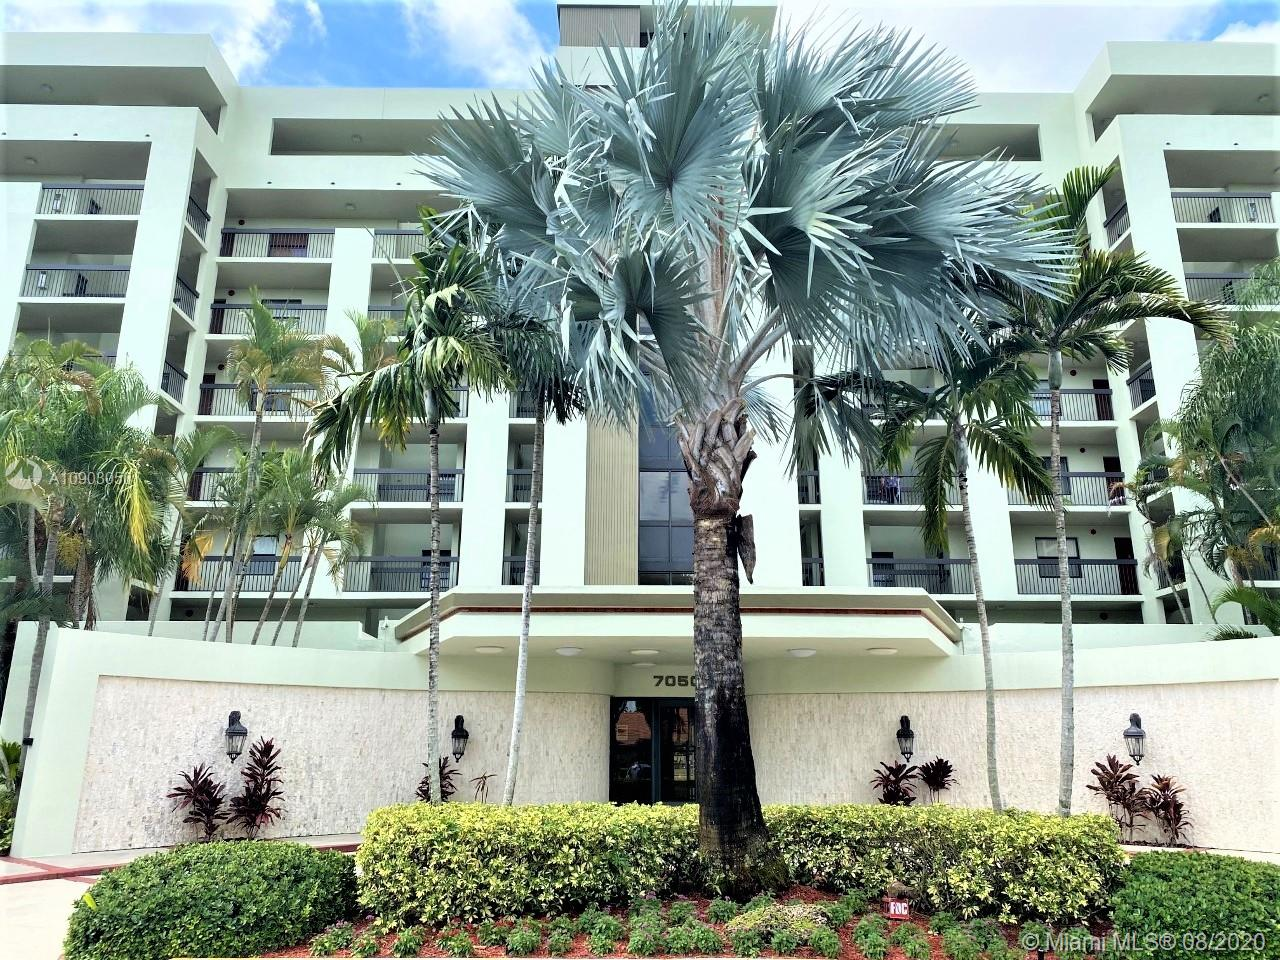 Absolutely stunning and meticulously kept 1416sq/ft - 2 bed - 2 bath condo overlooking pool and has golf course and water view. This furnished 6th floor unit has upgraded kitchen w/ SS appliances - tile floors throughout - washer  & dryer in unit. Horizons is a gated community & has a 10% down minimum requirement and cant be leased 1st year.